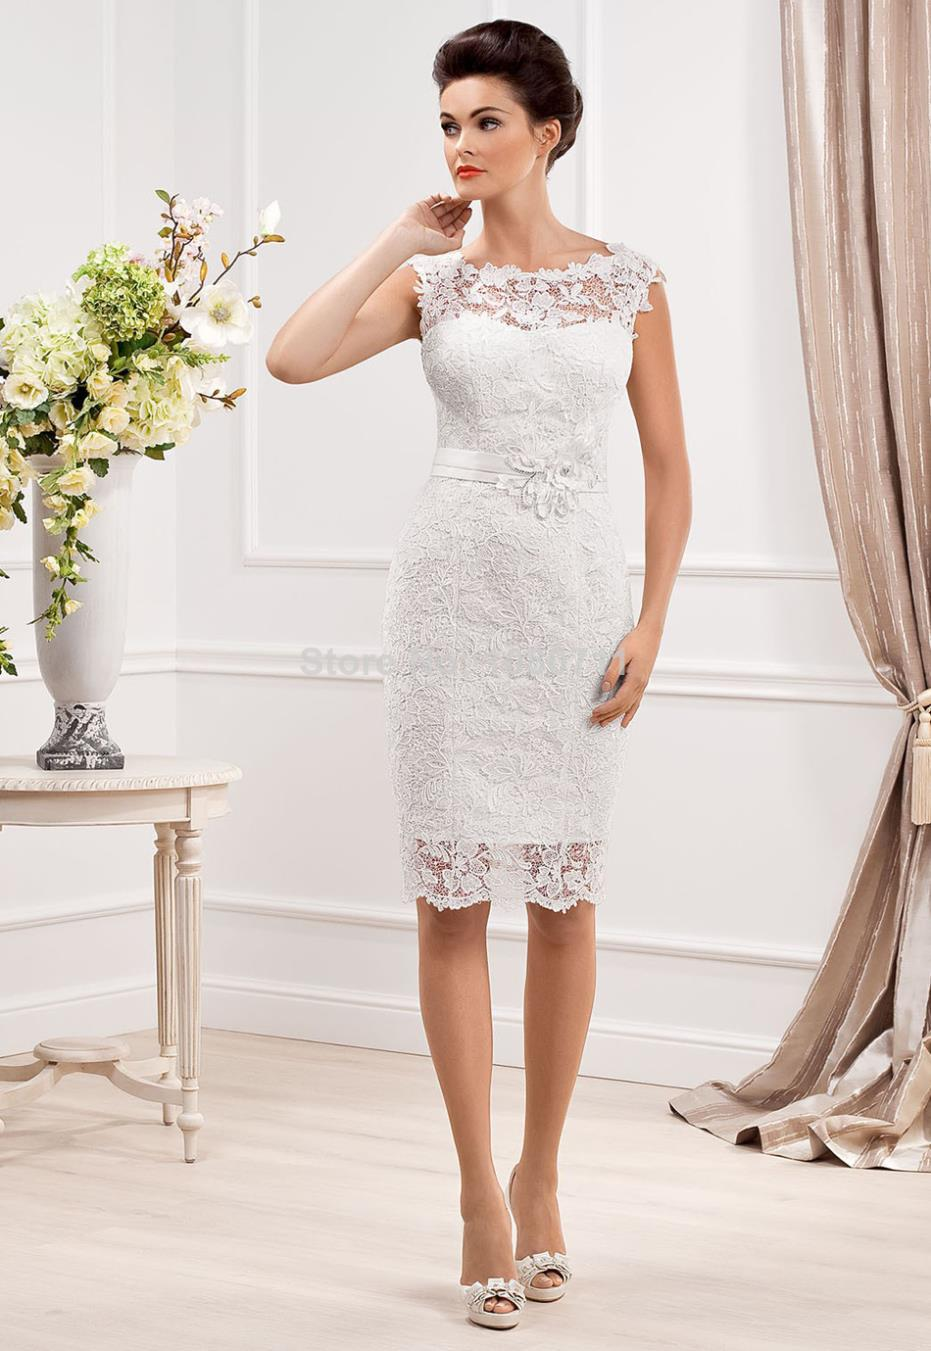 Wedding Dress Lace Fabric with Sashes Cap Sleeves High Neck Sheath ...